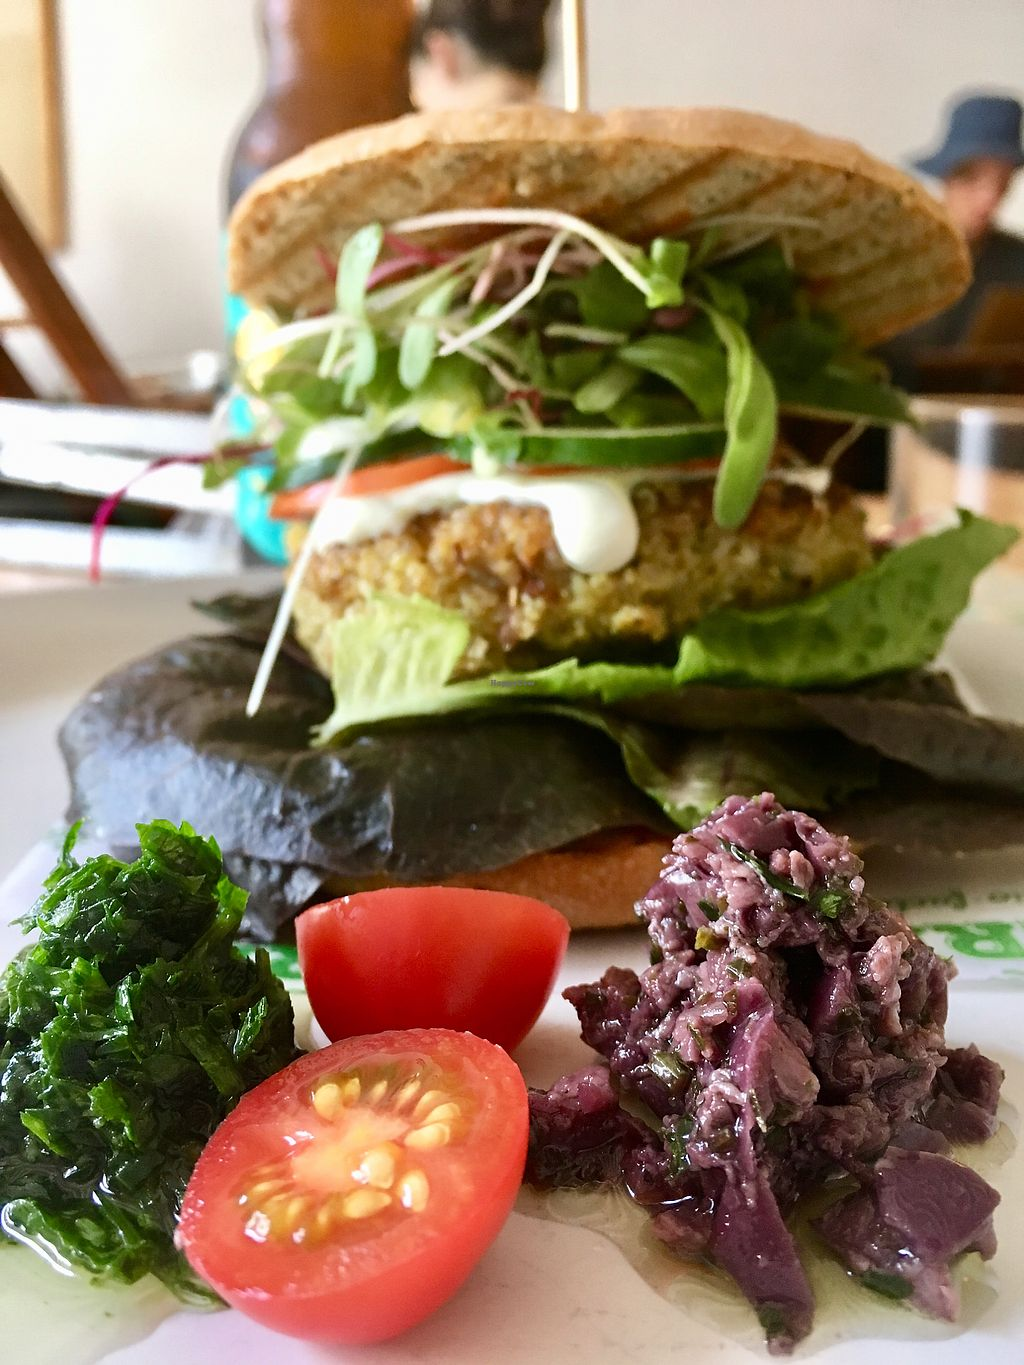 """Photo of La Verde  by <a href=""""/members/profile/milos99"""">milos99</a> <br/>La Verde sandwich with tapenade and chimichuri <br/> March 27, 2018  - <a href='/contact/abuse/image/64792/376872'>Report</a>"""